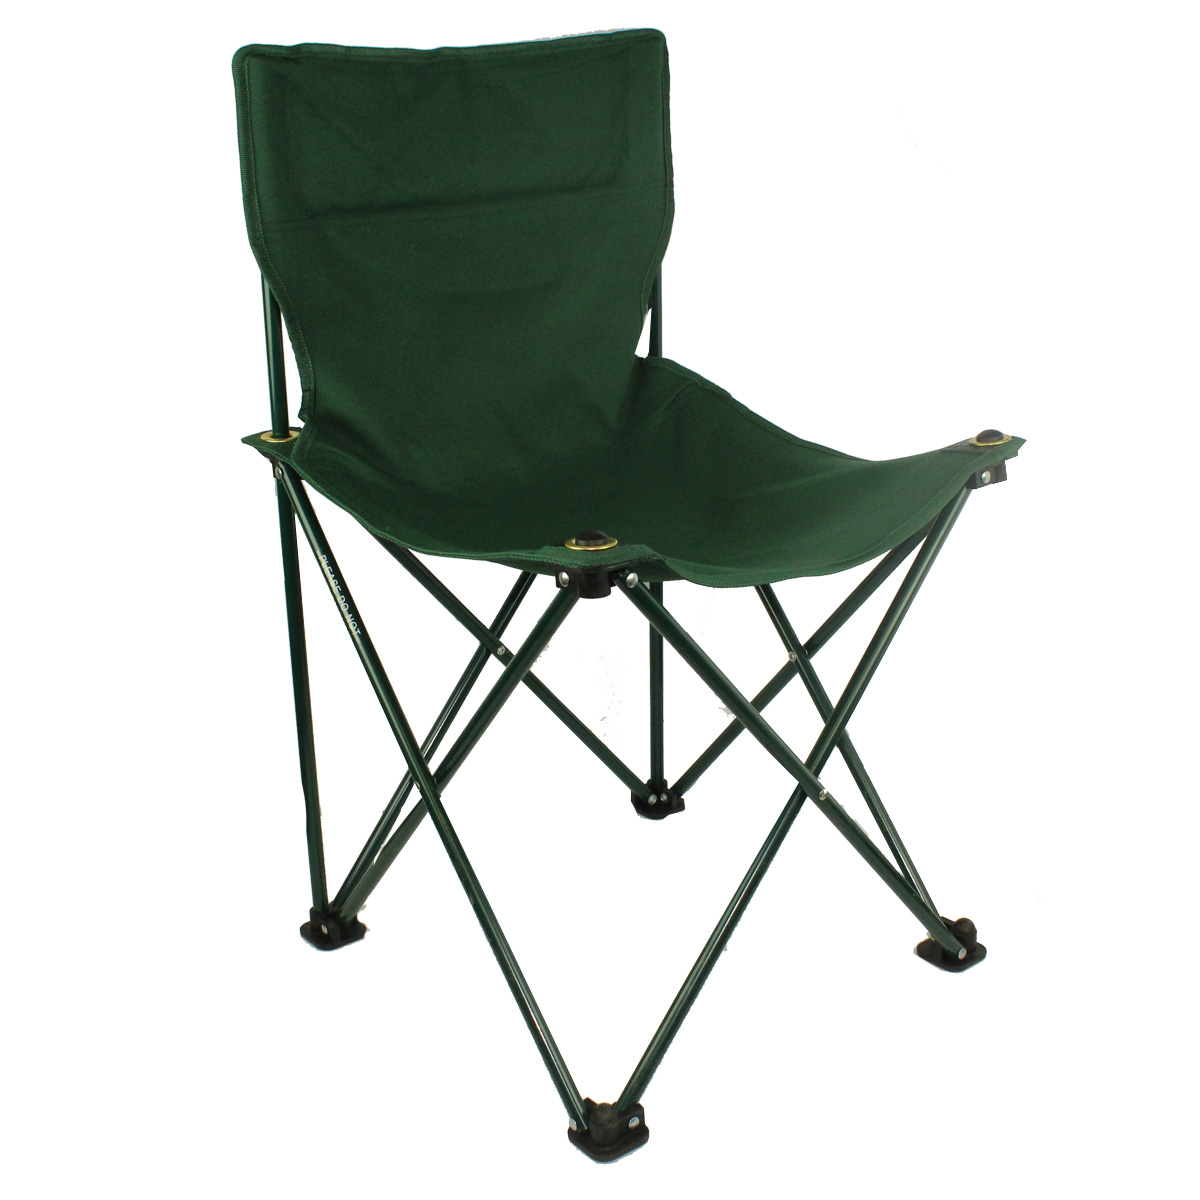 portable chairs for golf tournaments high back dining chair covers australia masters tournament folding 2015 dated